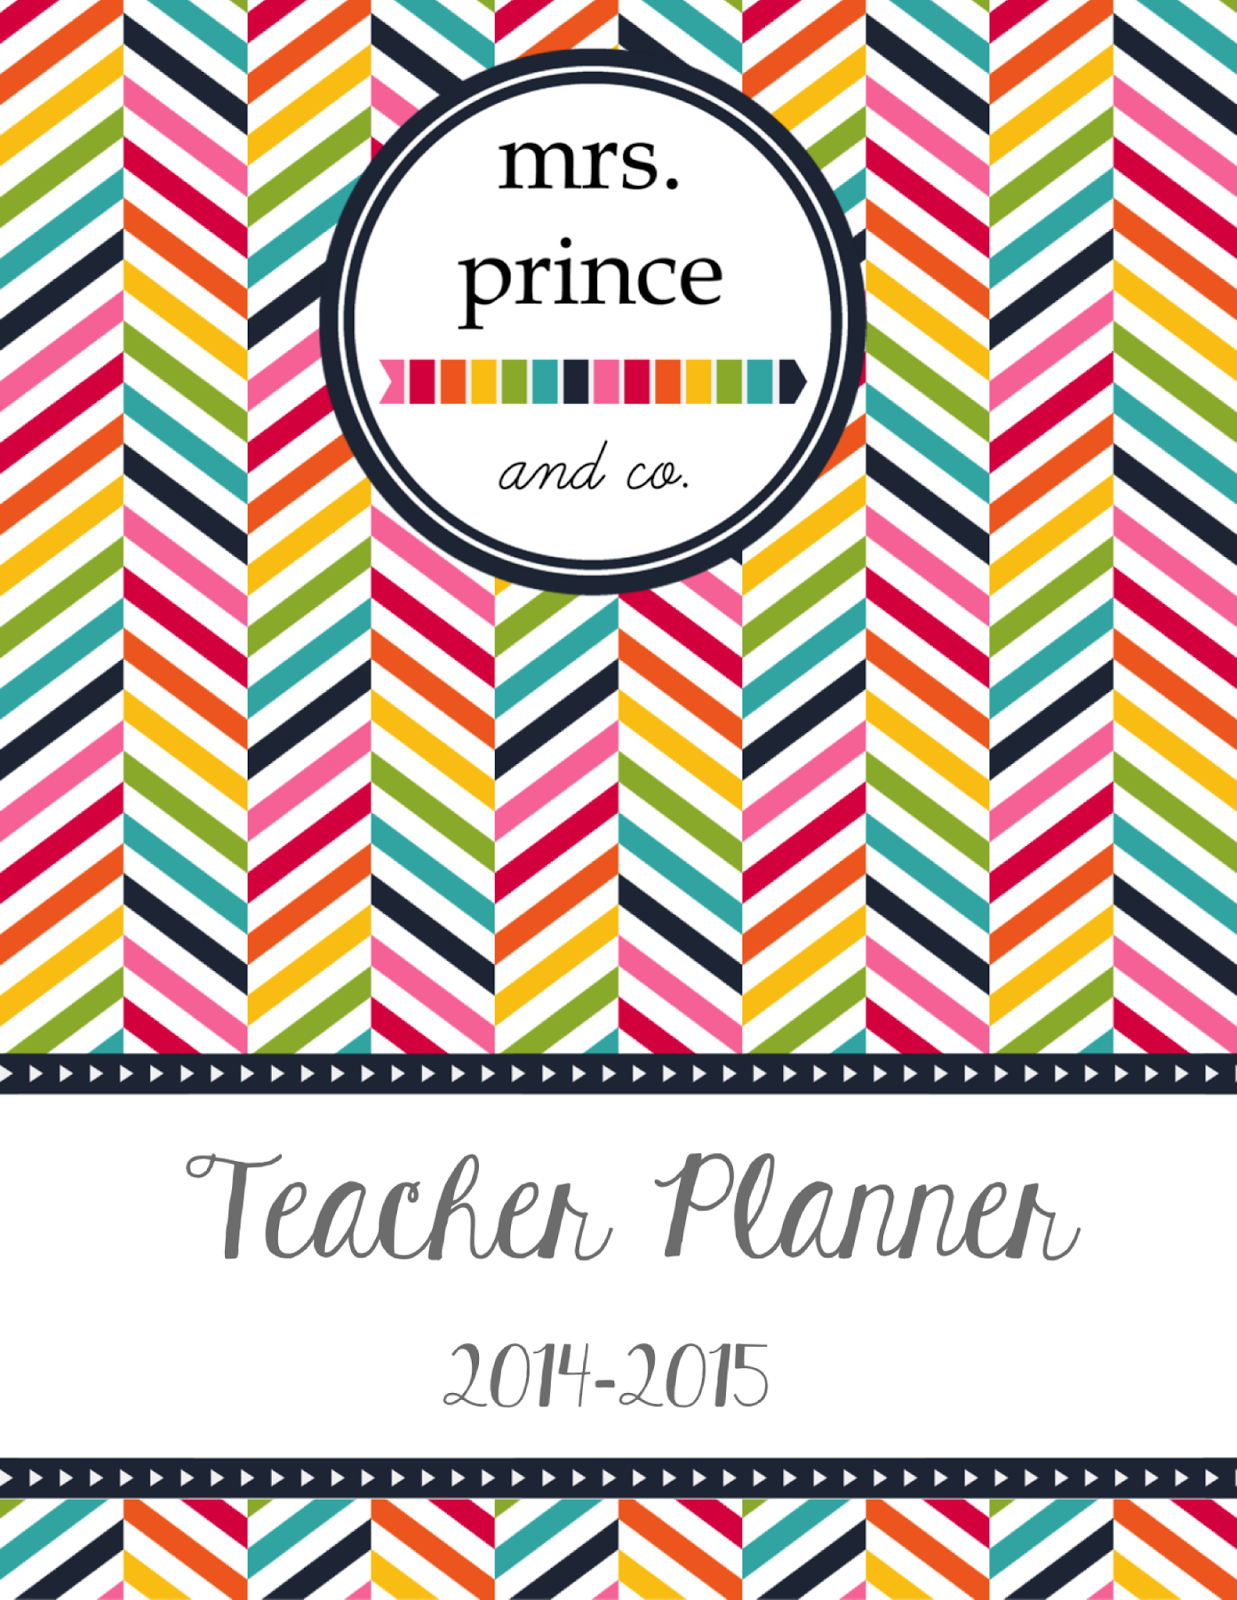 http://www.teacherspayteachers.com/Product/Teacher-Planner-2014-2015-1235392